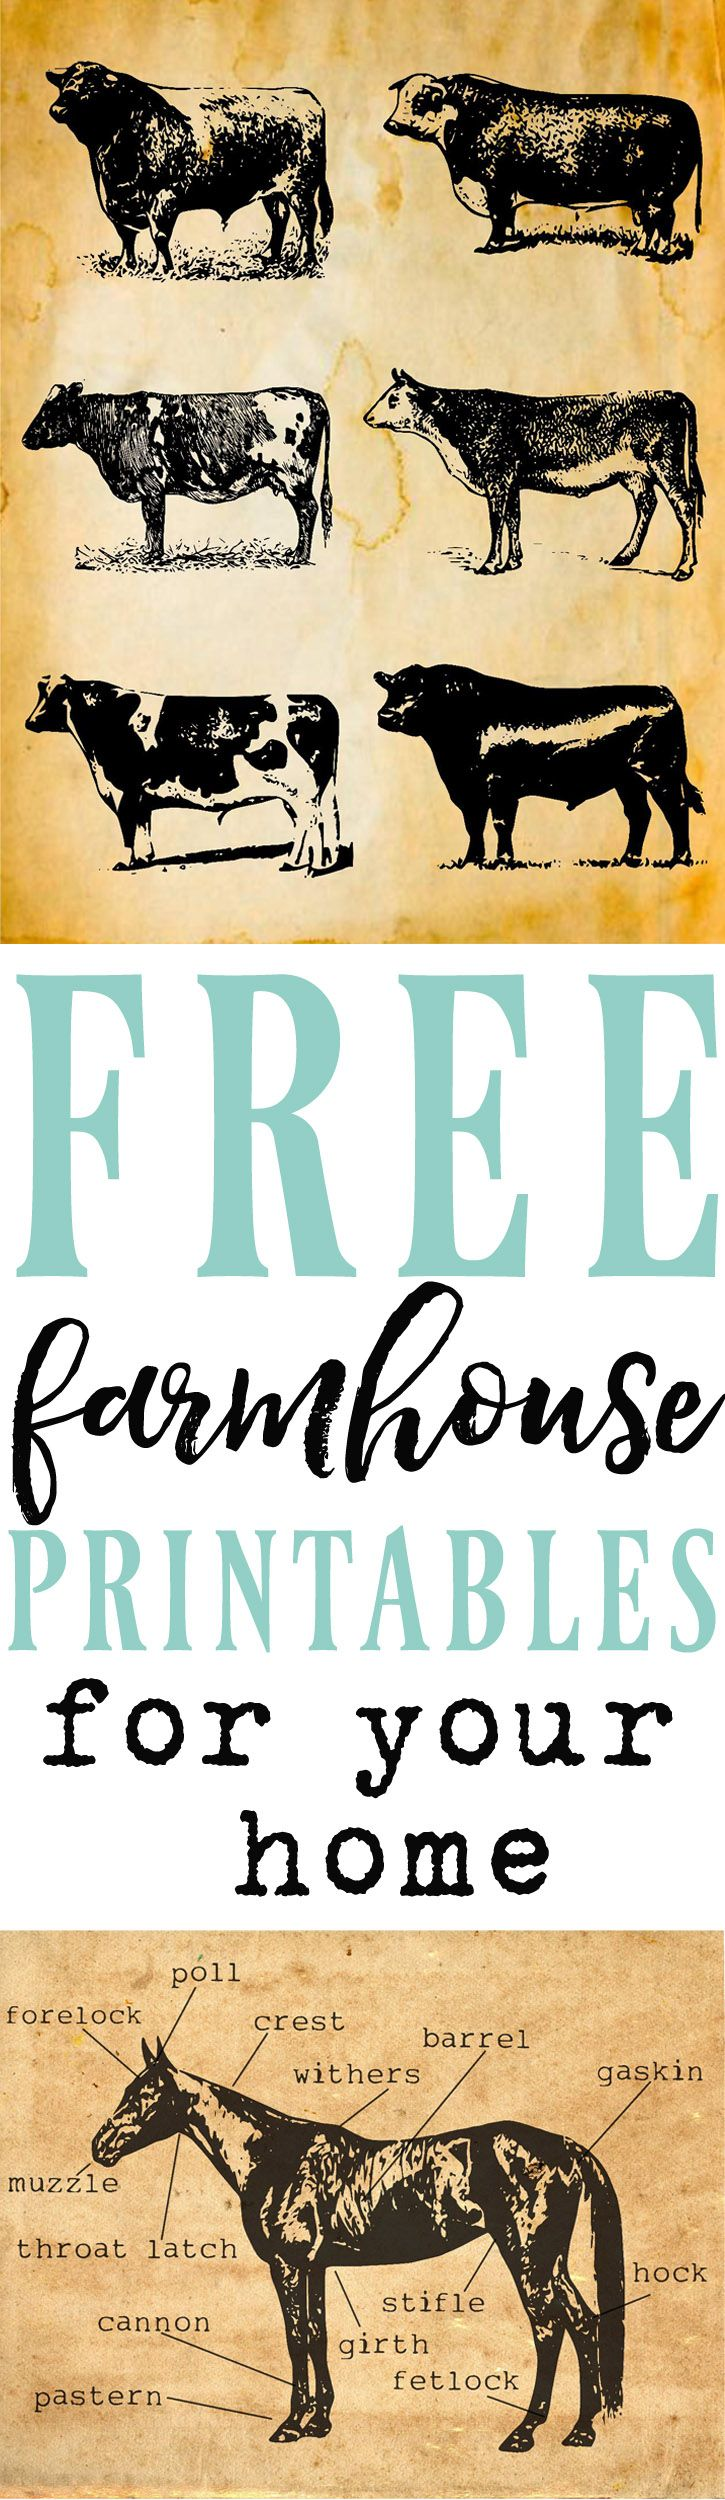 Looking to add farmhouse style to your home?! Tons of farmhouse inspired printables to choose from all for free!! Joanna Gains/fixer upper inspired home decor perfect to adorn your shiplap walls!